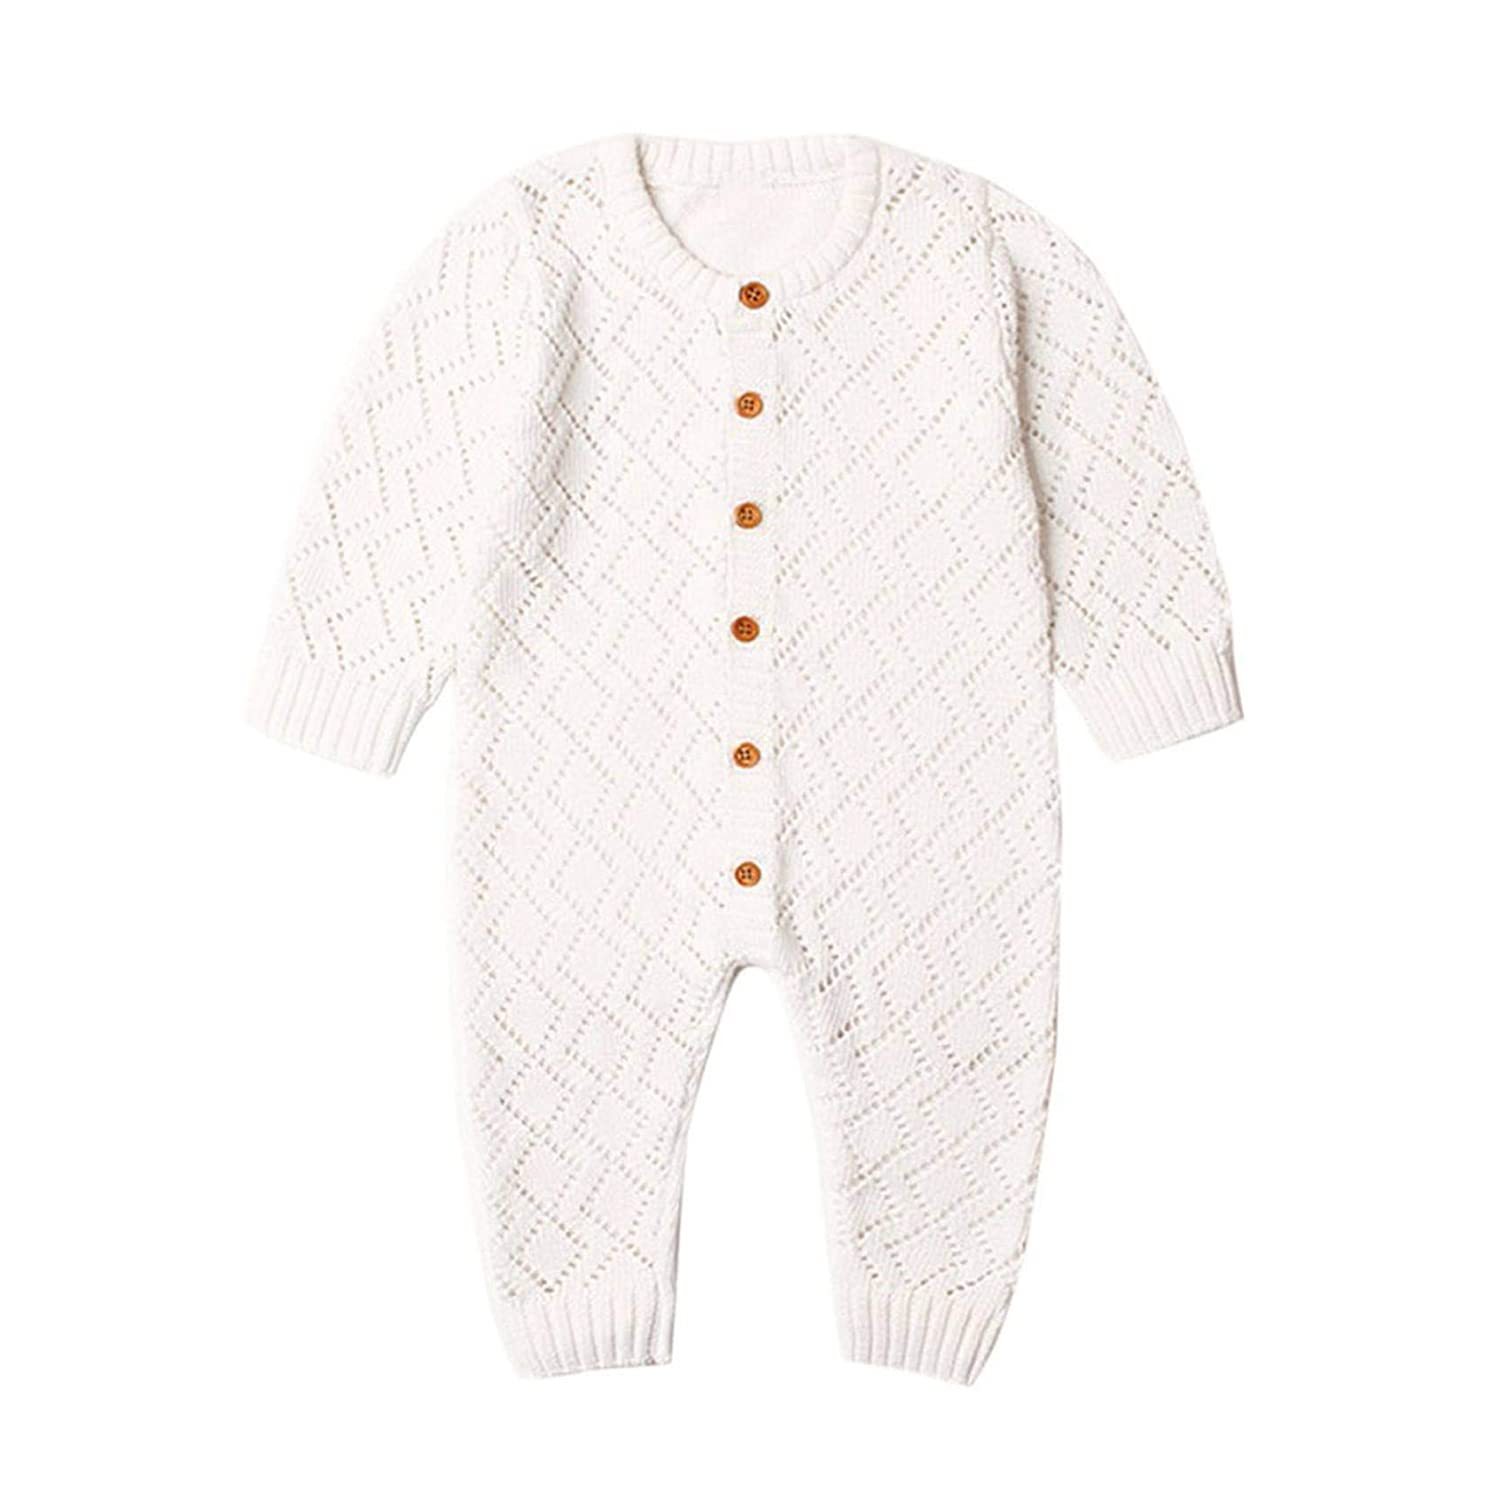 SMALL FAT Jumpsuit Girls Candy Color Knitted Long Sleeve Newborn Baby Clothes Infant Boy Overall Children Outfit Spring